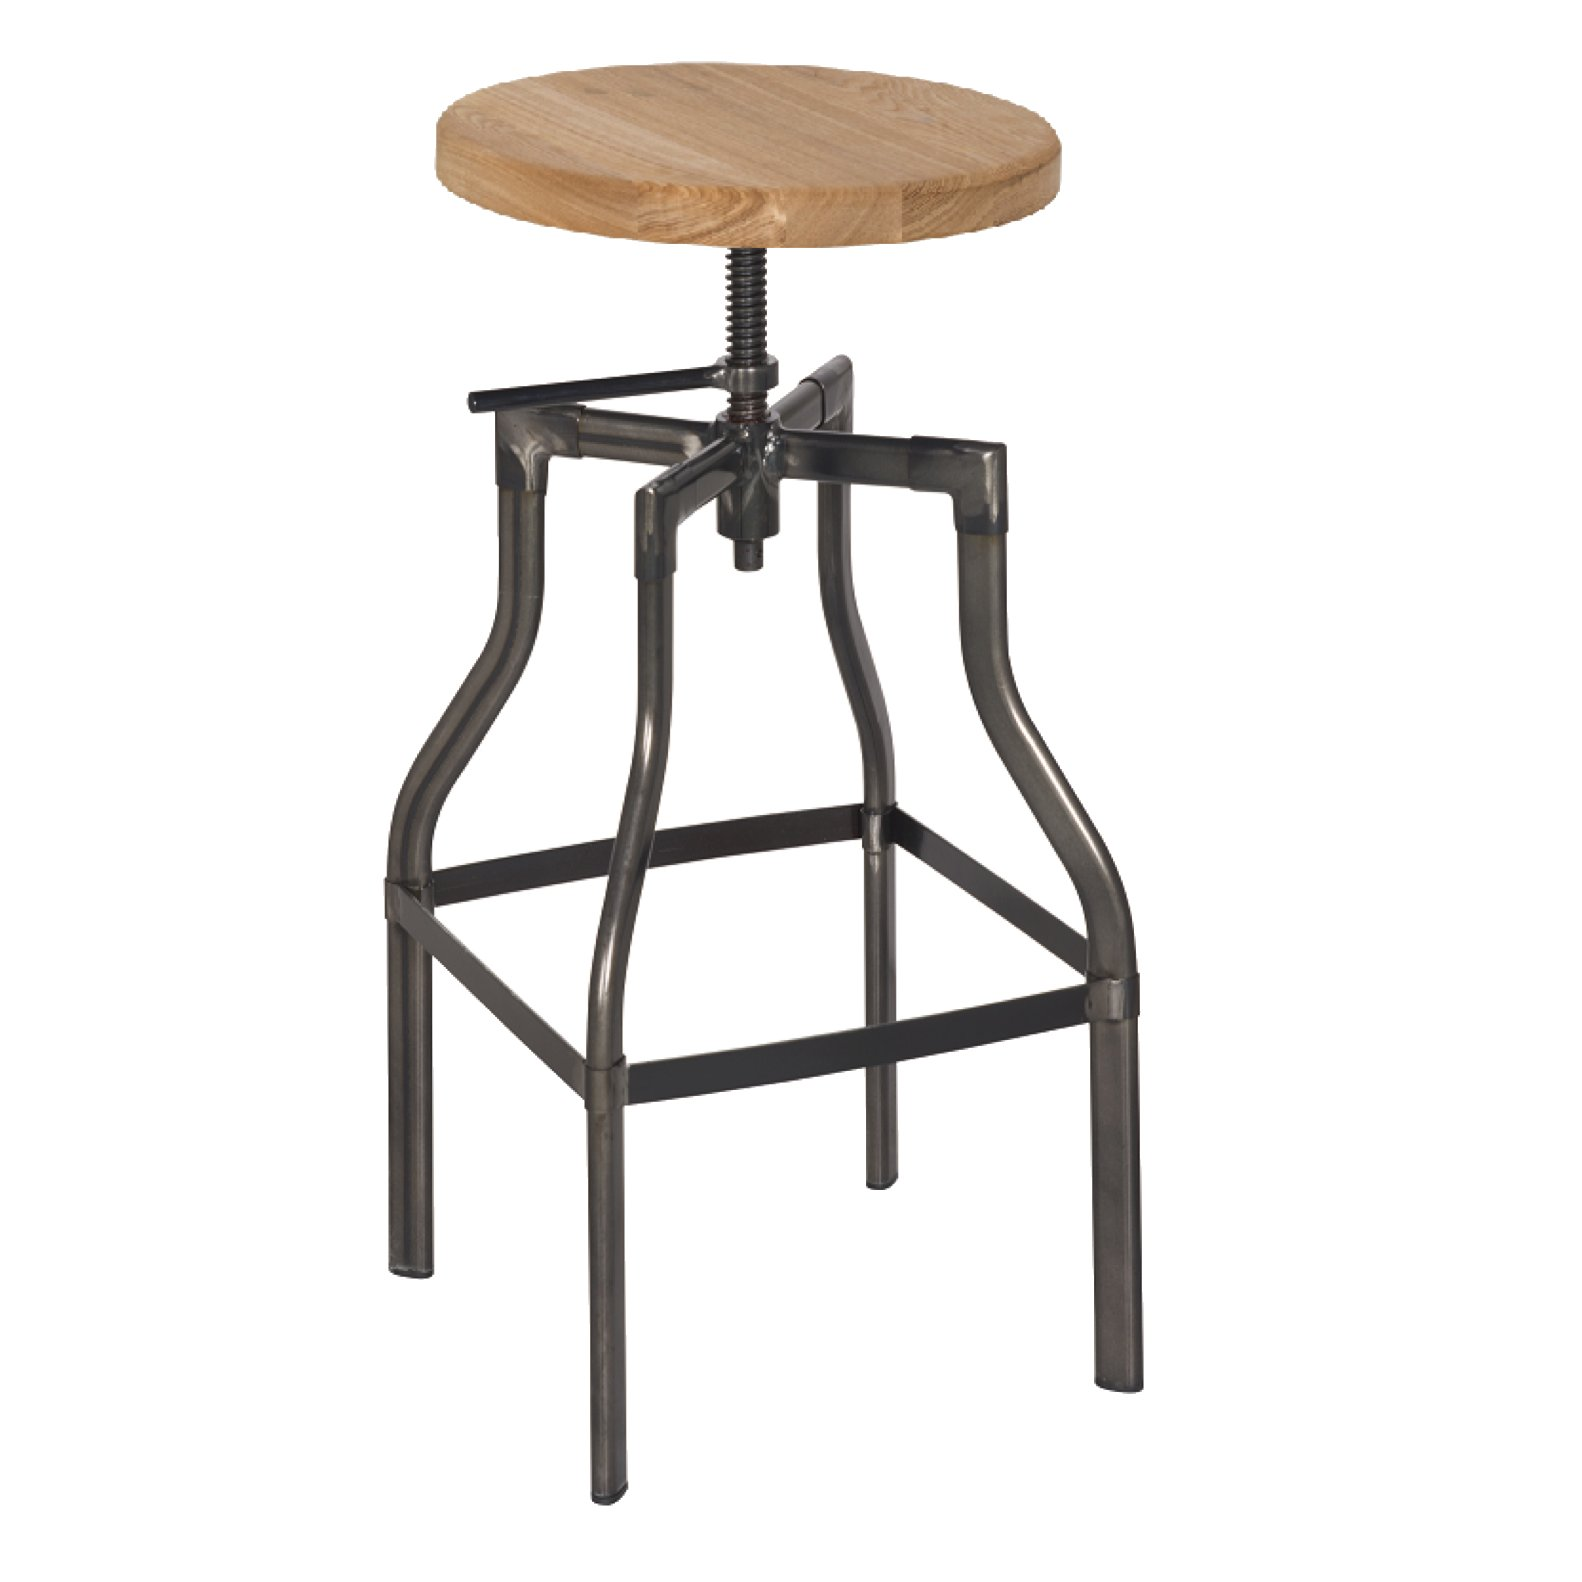 be the first to review torque industrial bar stool cancel reply